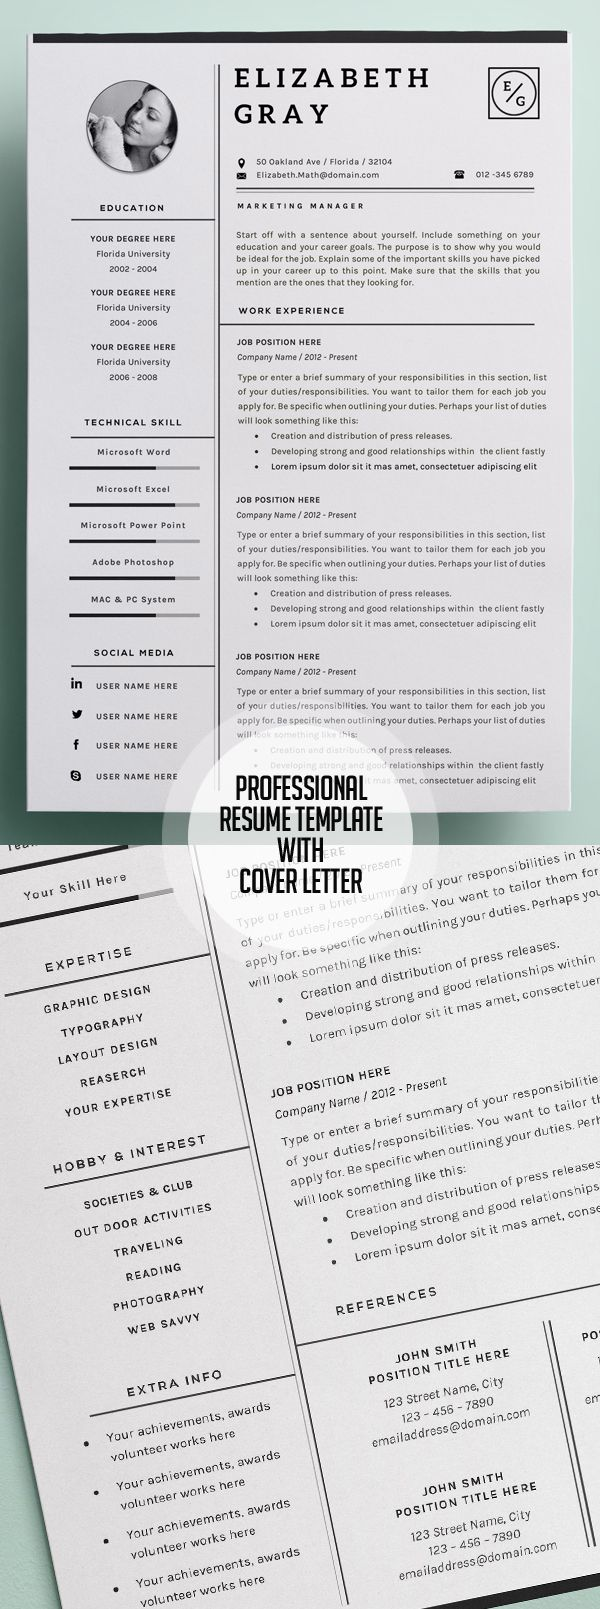 Opposenewapstandardsus  Seductive  Resume Ideas On Pinterest  Resume Resume Templates And  With Exciting Professional And Modern Resume Template With Page Cover Cvtemplate With Charming Target Resume Also Resume Personal Statement Examples In Addition Good Objective For A Resume And Resume Editing As Well As Rate My Resume Additionally Resume For Pharmacy Technician From Pinterestcom With Opposenewapstandardsus  Exciting  Resume Ideas On Pinterest  Resume Resume Templates And  With Charming Professional And Modern Resume Template With Page Cover Cvtemplate And Seductive Target Resume Also Resume Personal Statement Examples In Addition Good Objective For A Resume From Pinterestcom